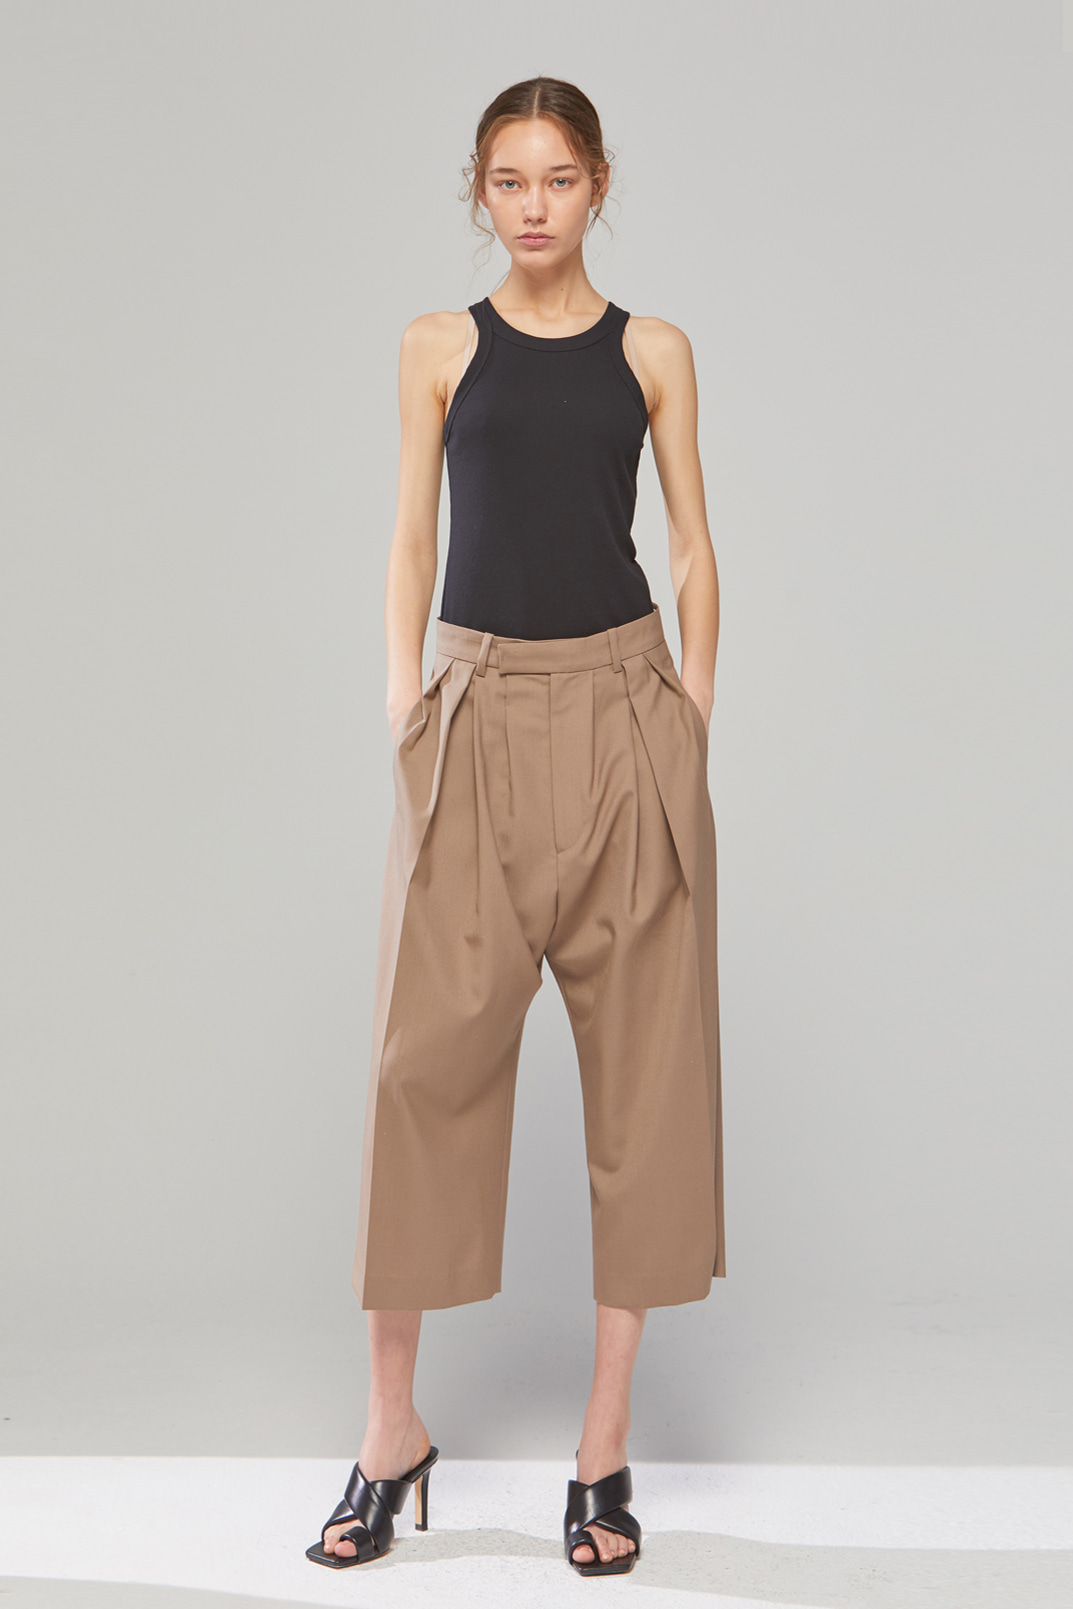 DEMERE LIGHT-WOOL TUCK SHORTS (DARK BEIGE)